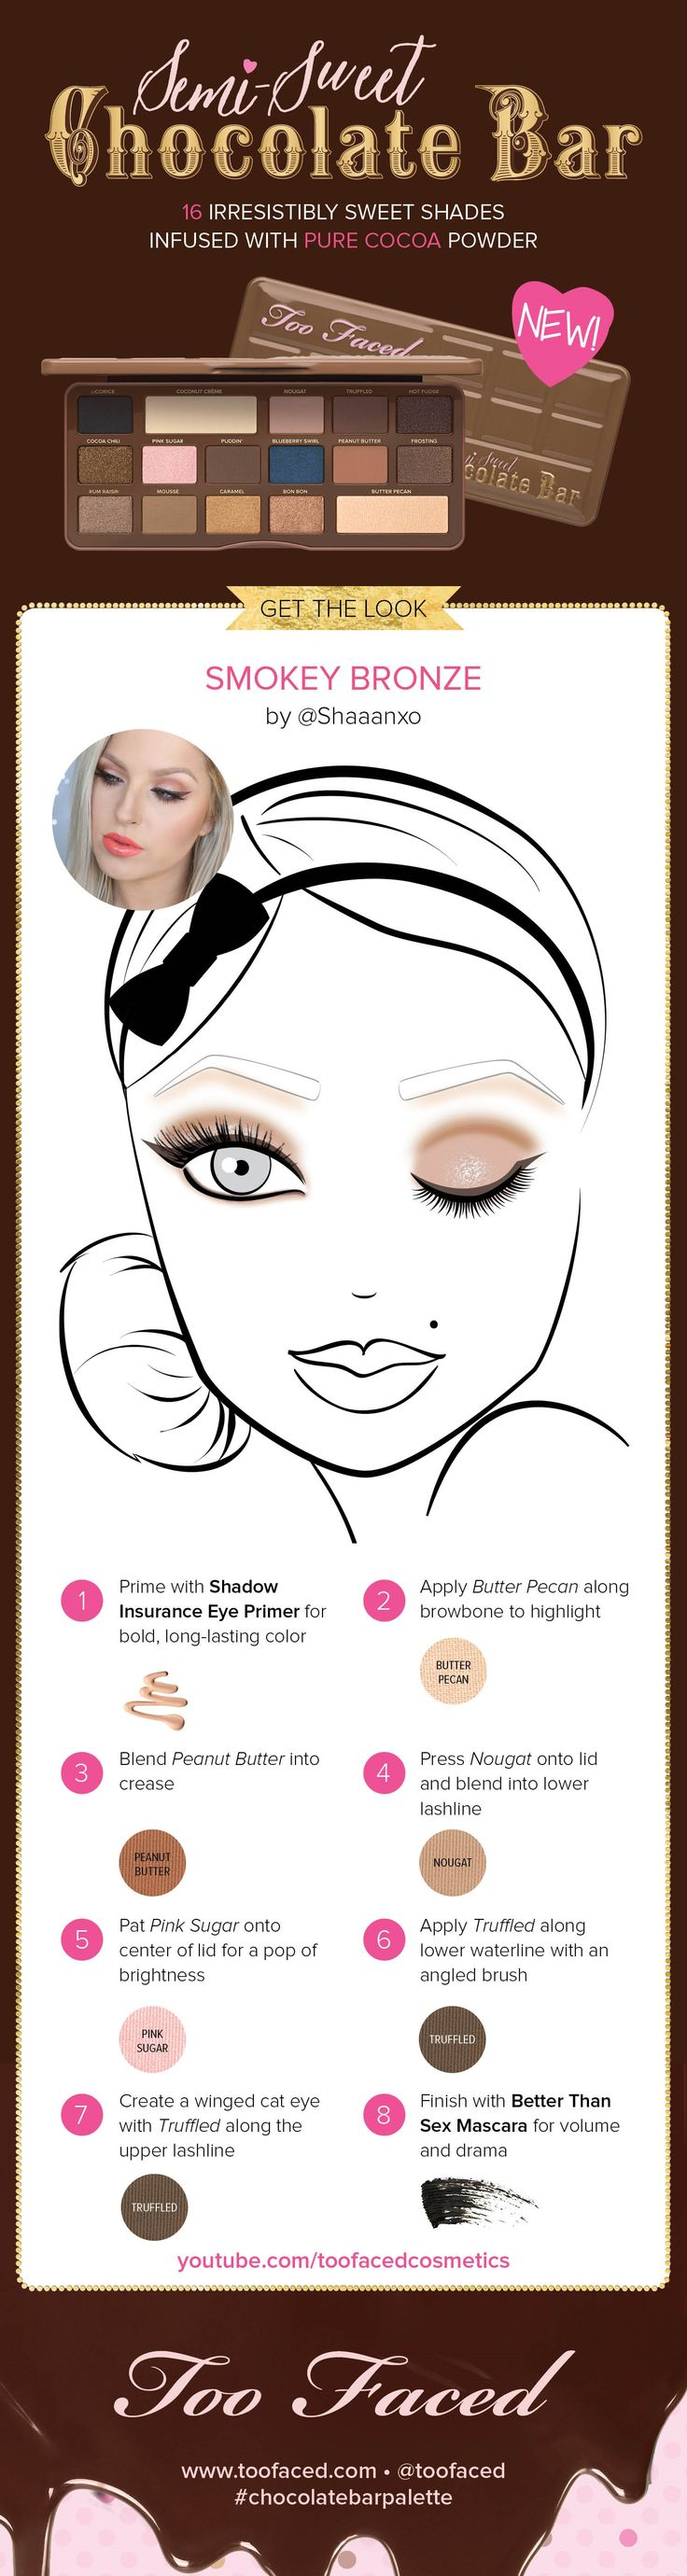 Best 25+ Chocolate bar too faced ideas on Pinterest | Chocolate ...